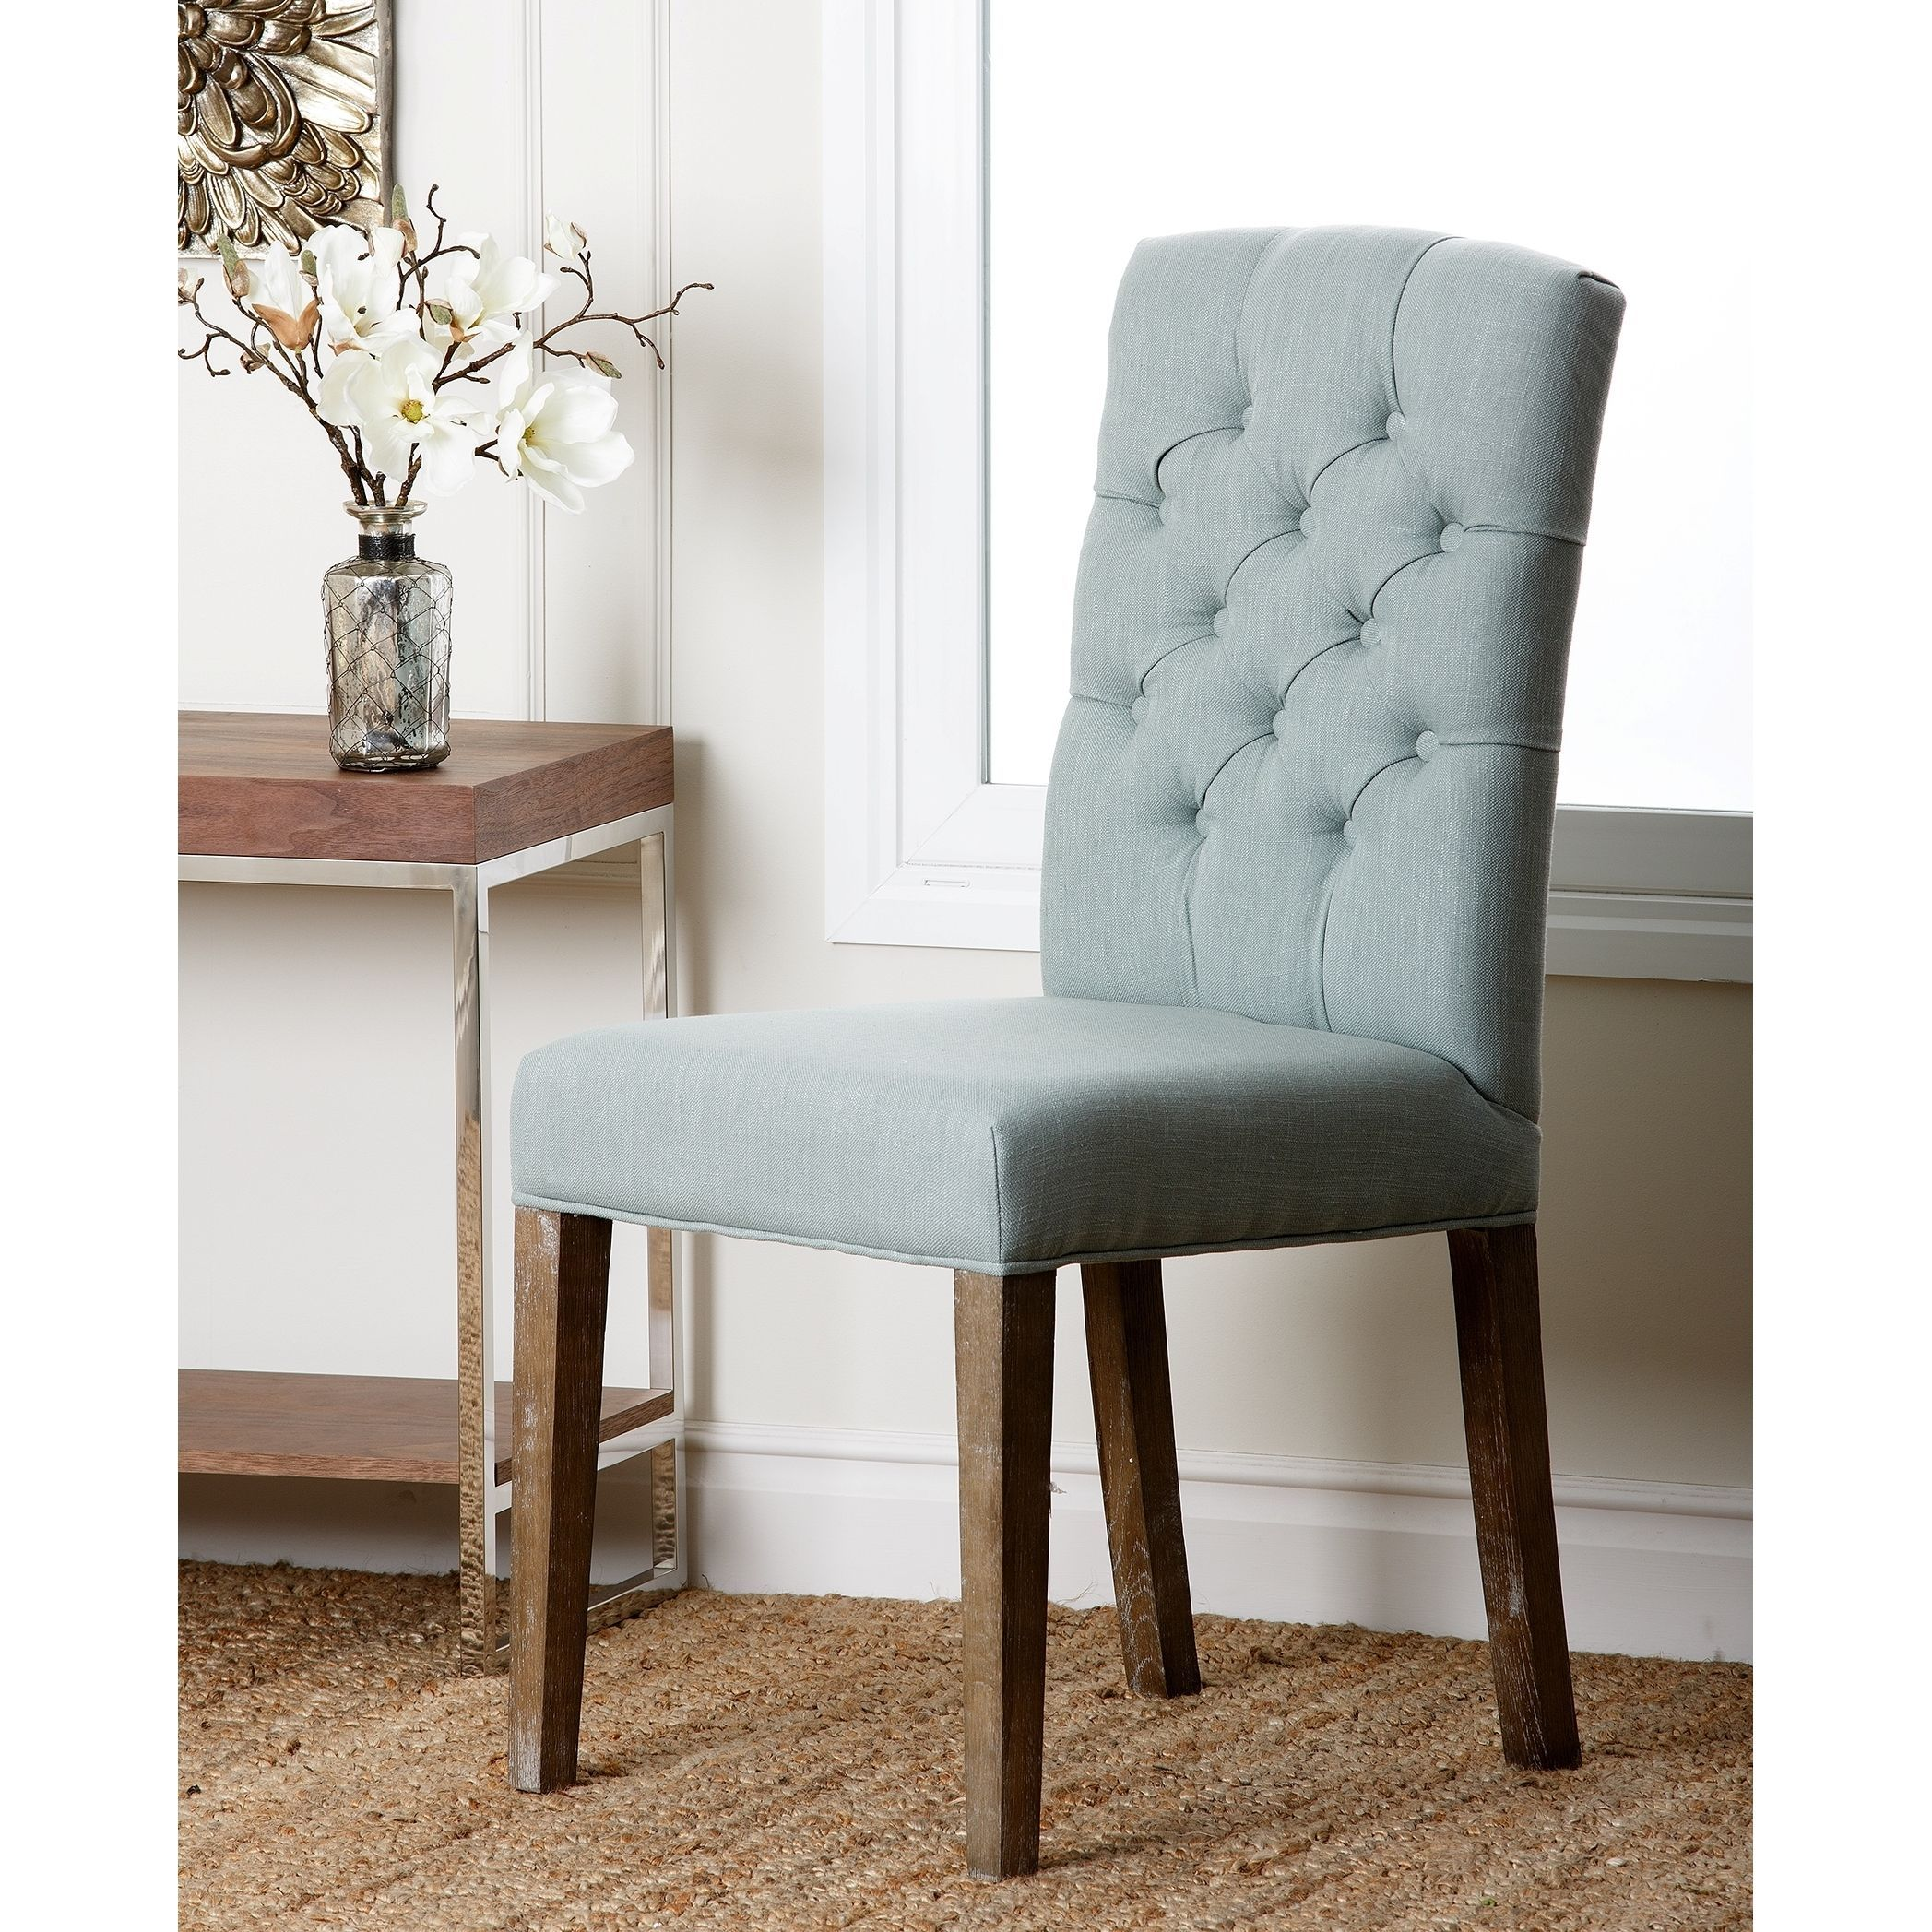 Blue Parsons Chair Abbyson Living Colin Seafoam Blue Linen Tufted Dining